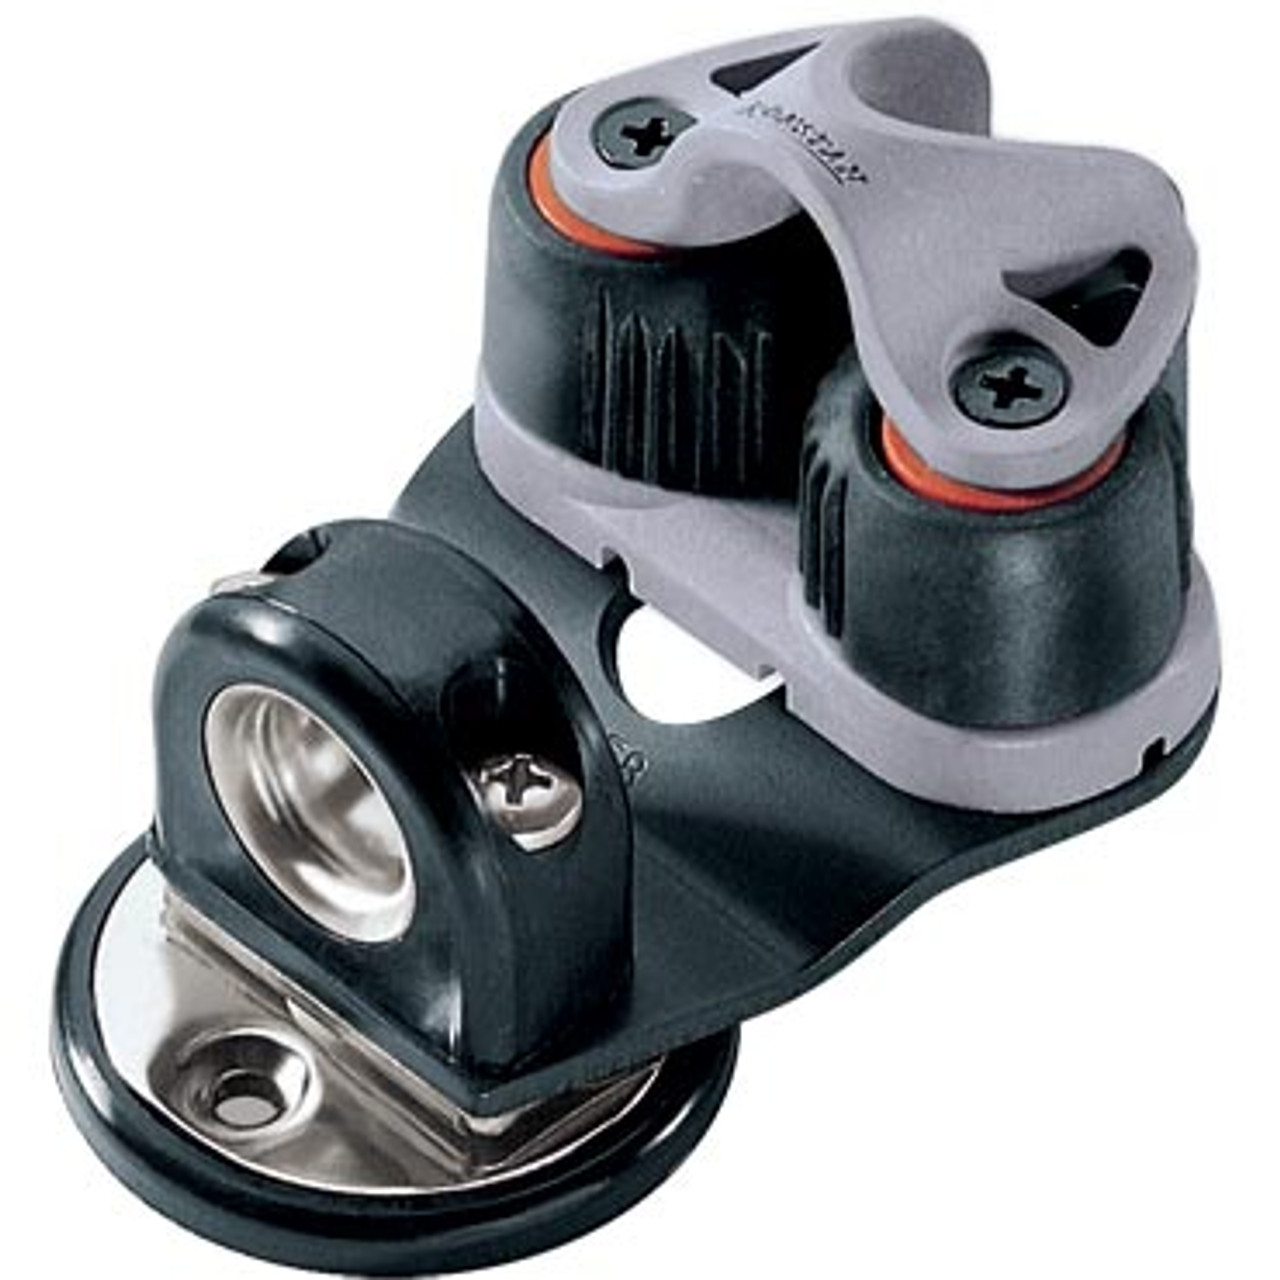 Swiveling Cam Cleat